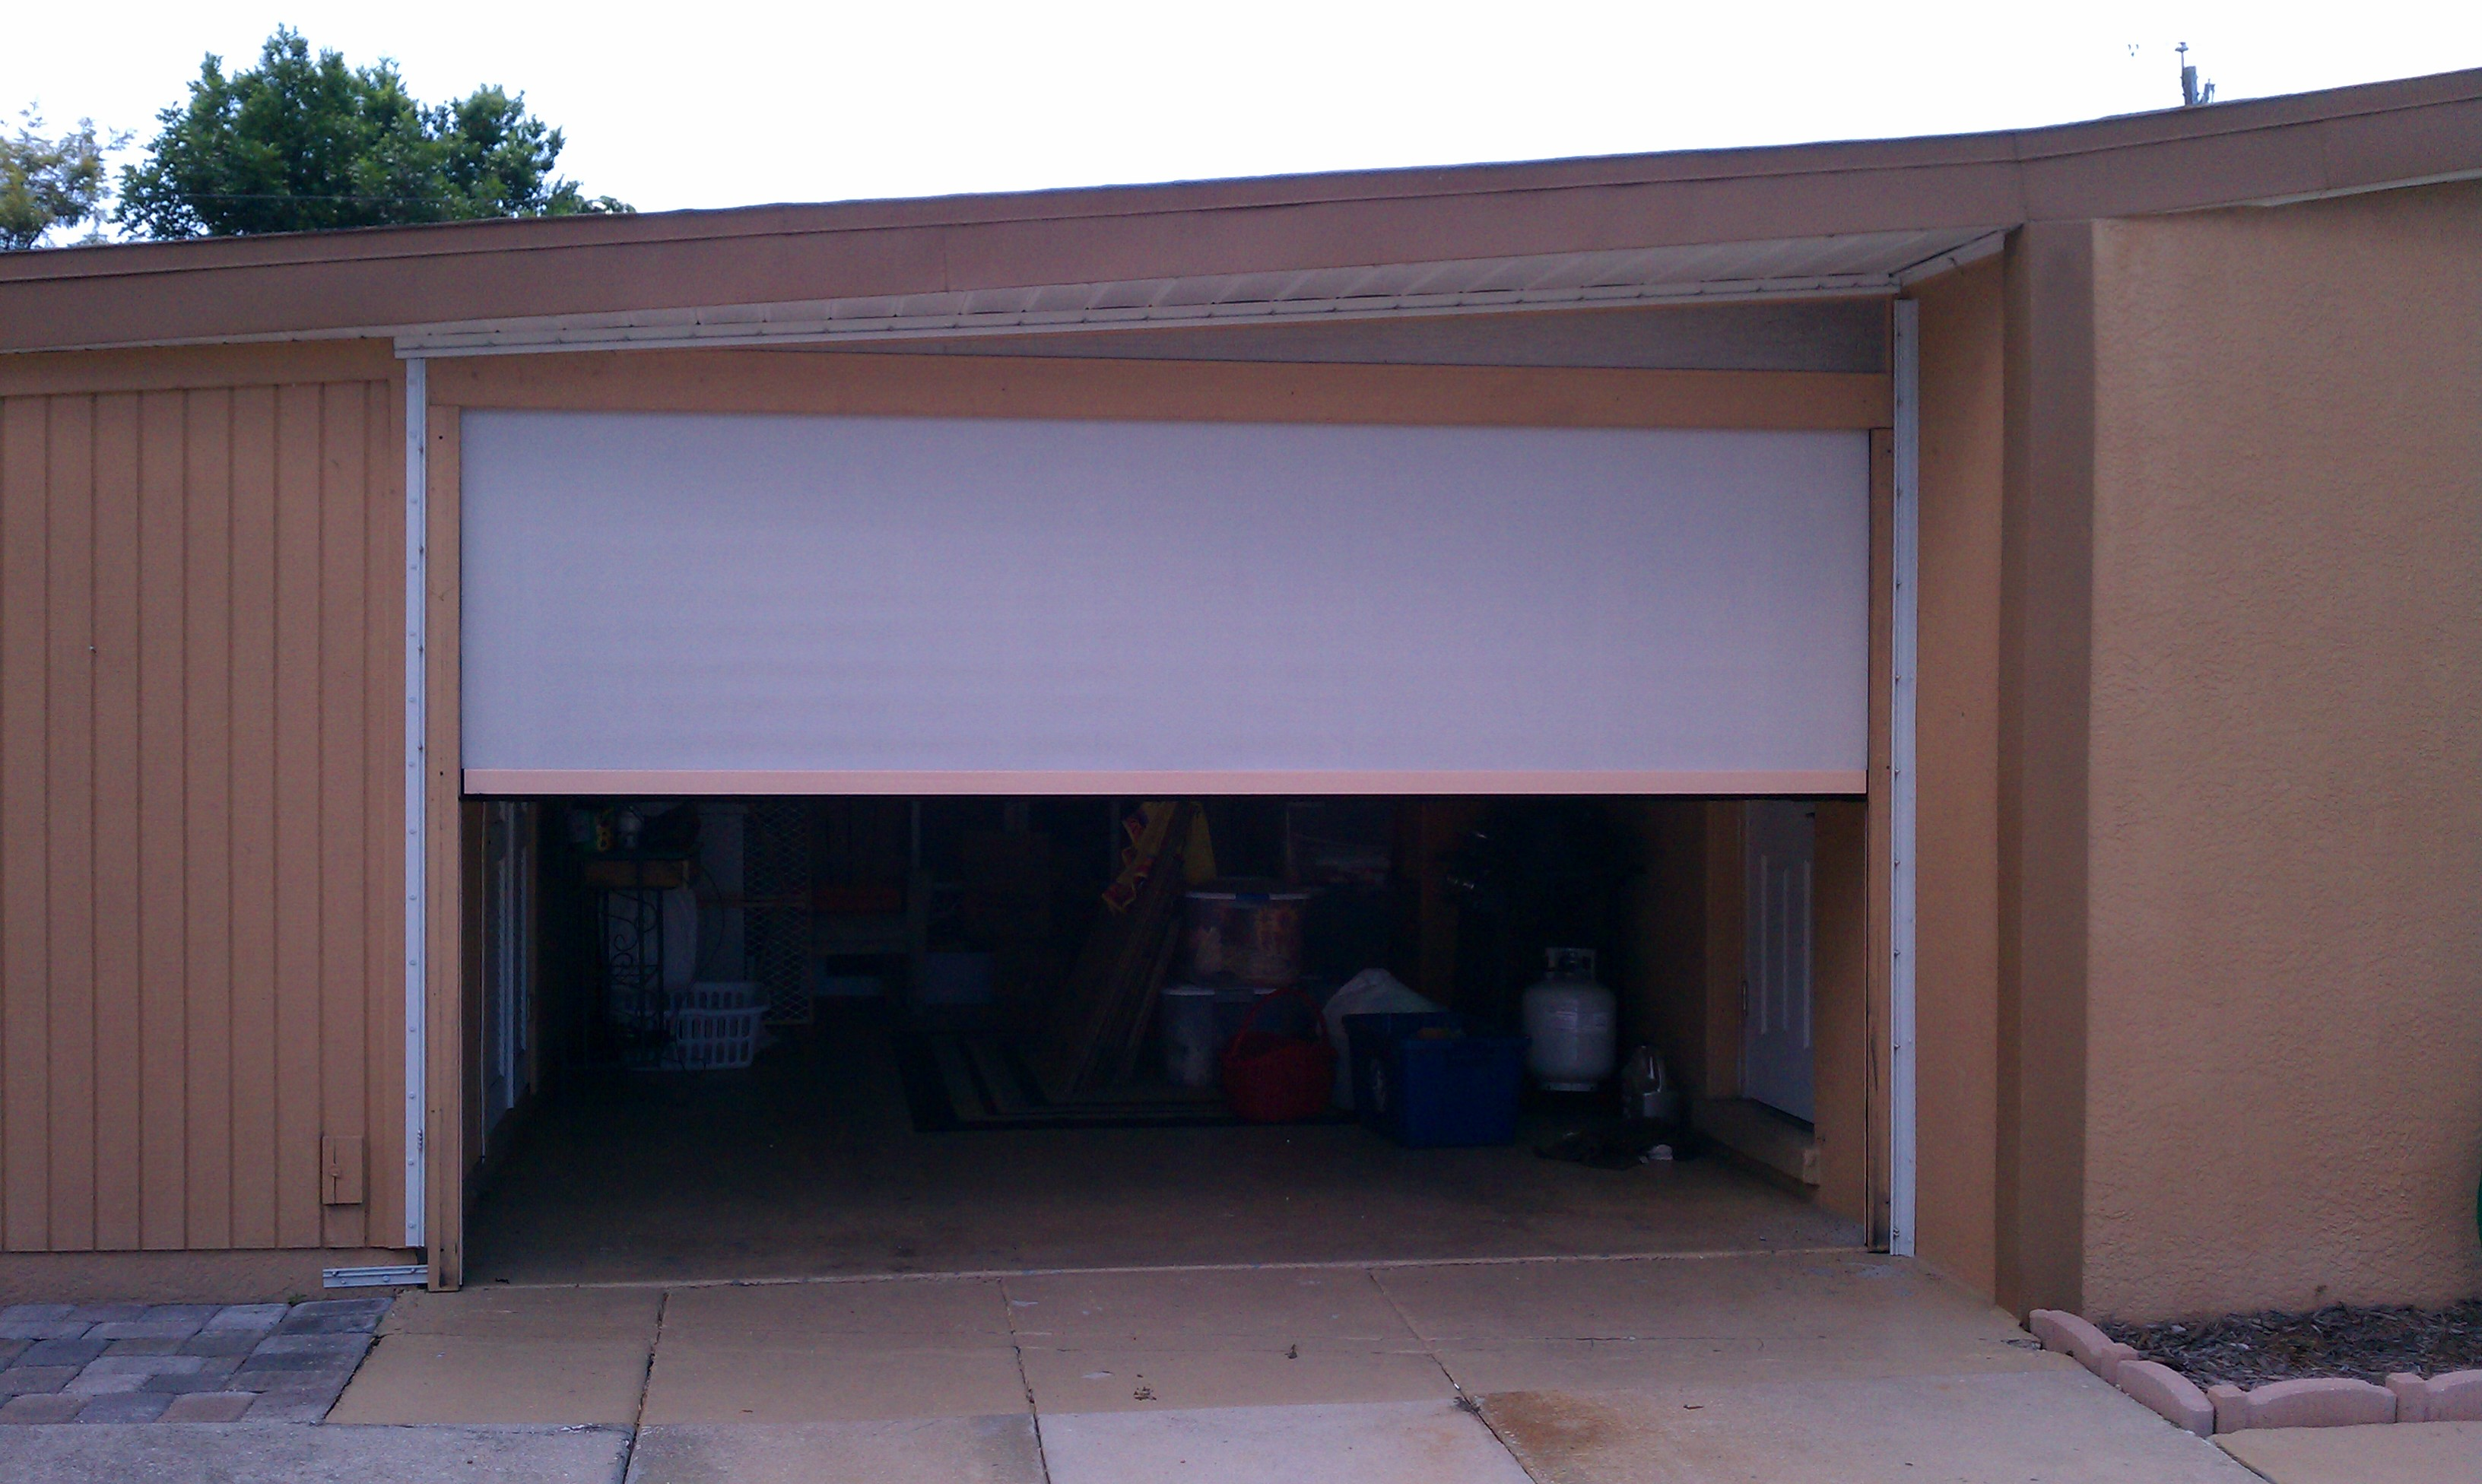 Garage doors gulf coast retractable screens for Motorized garage door screens